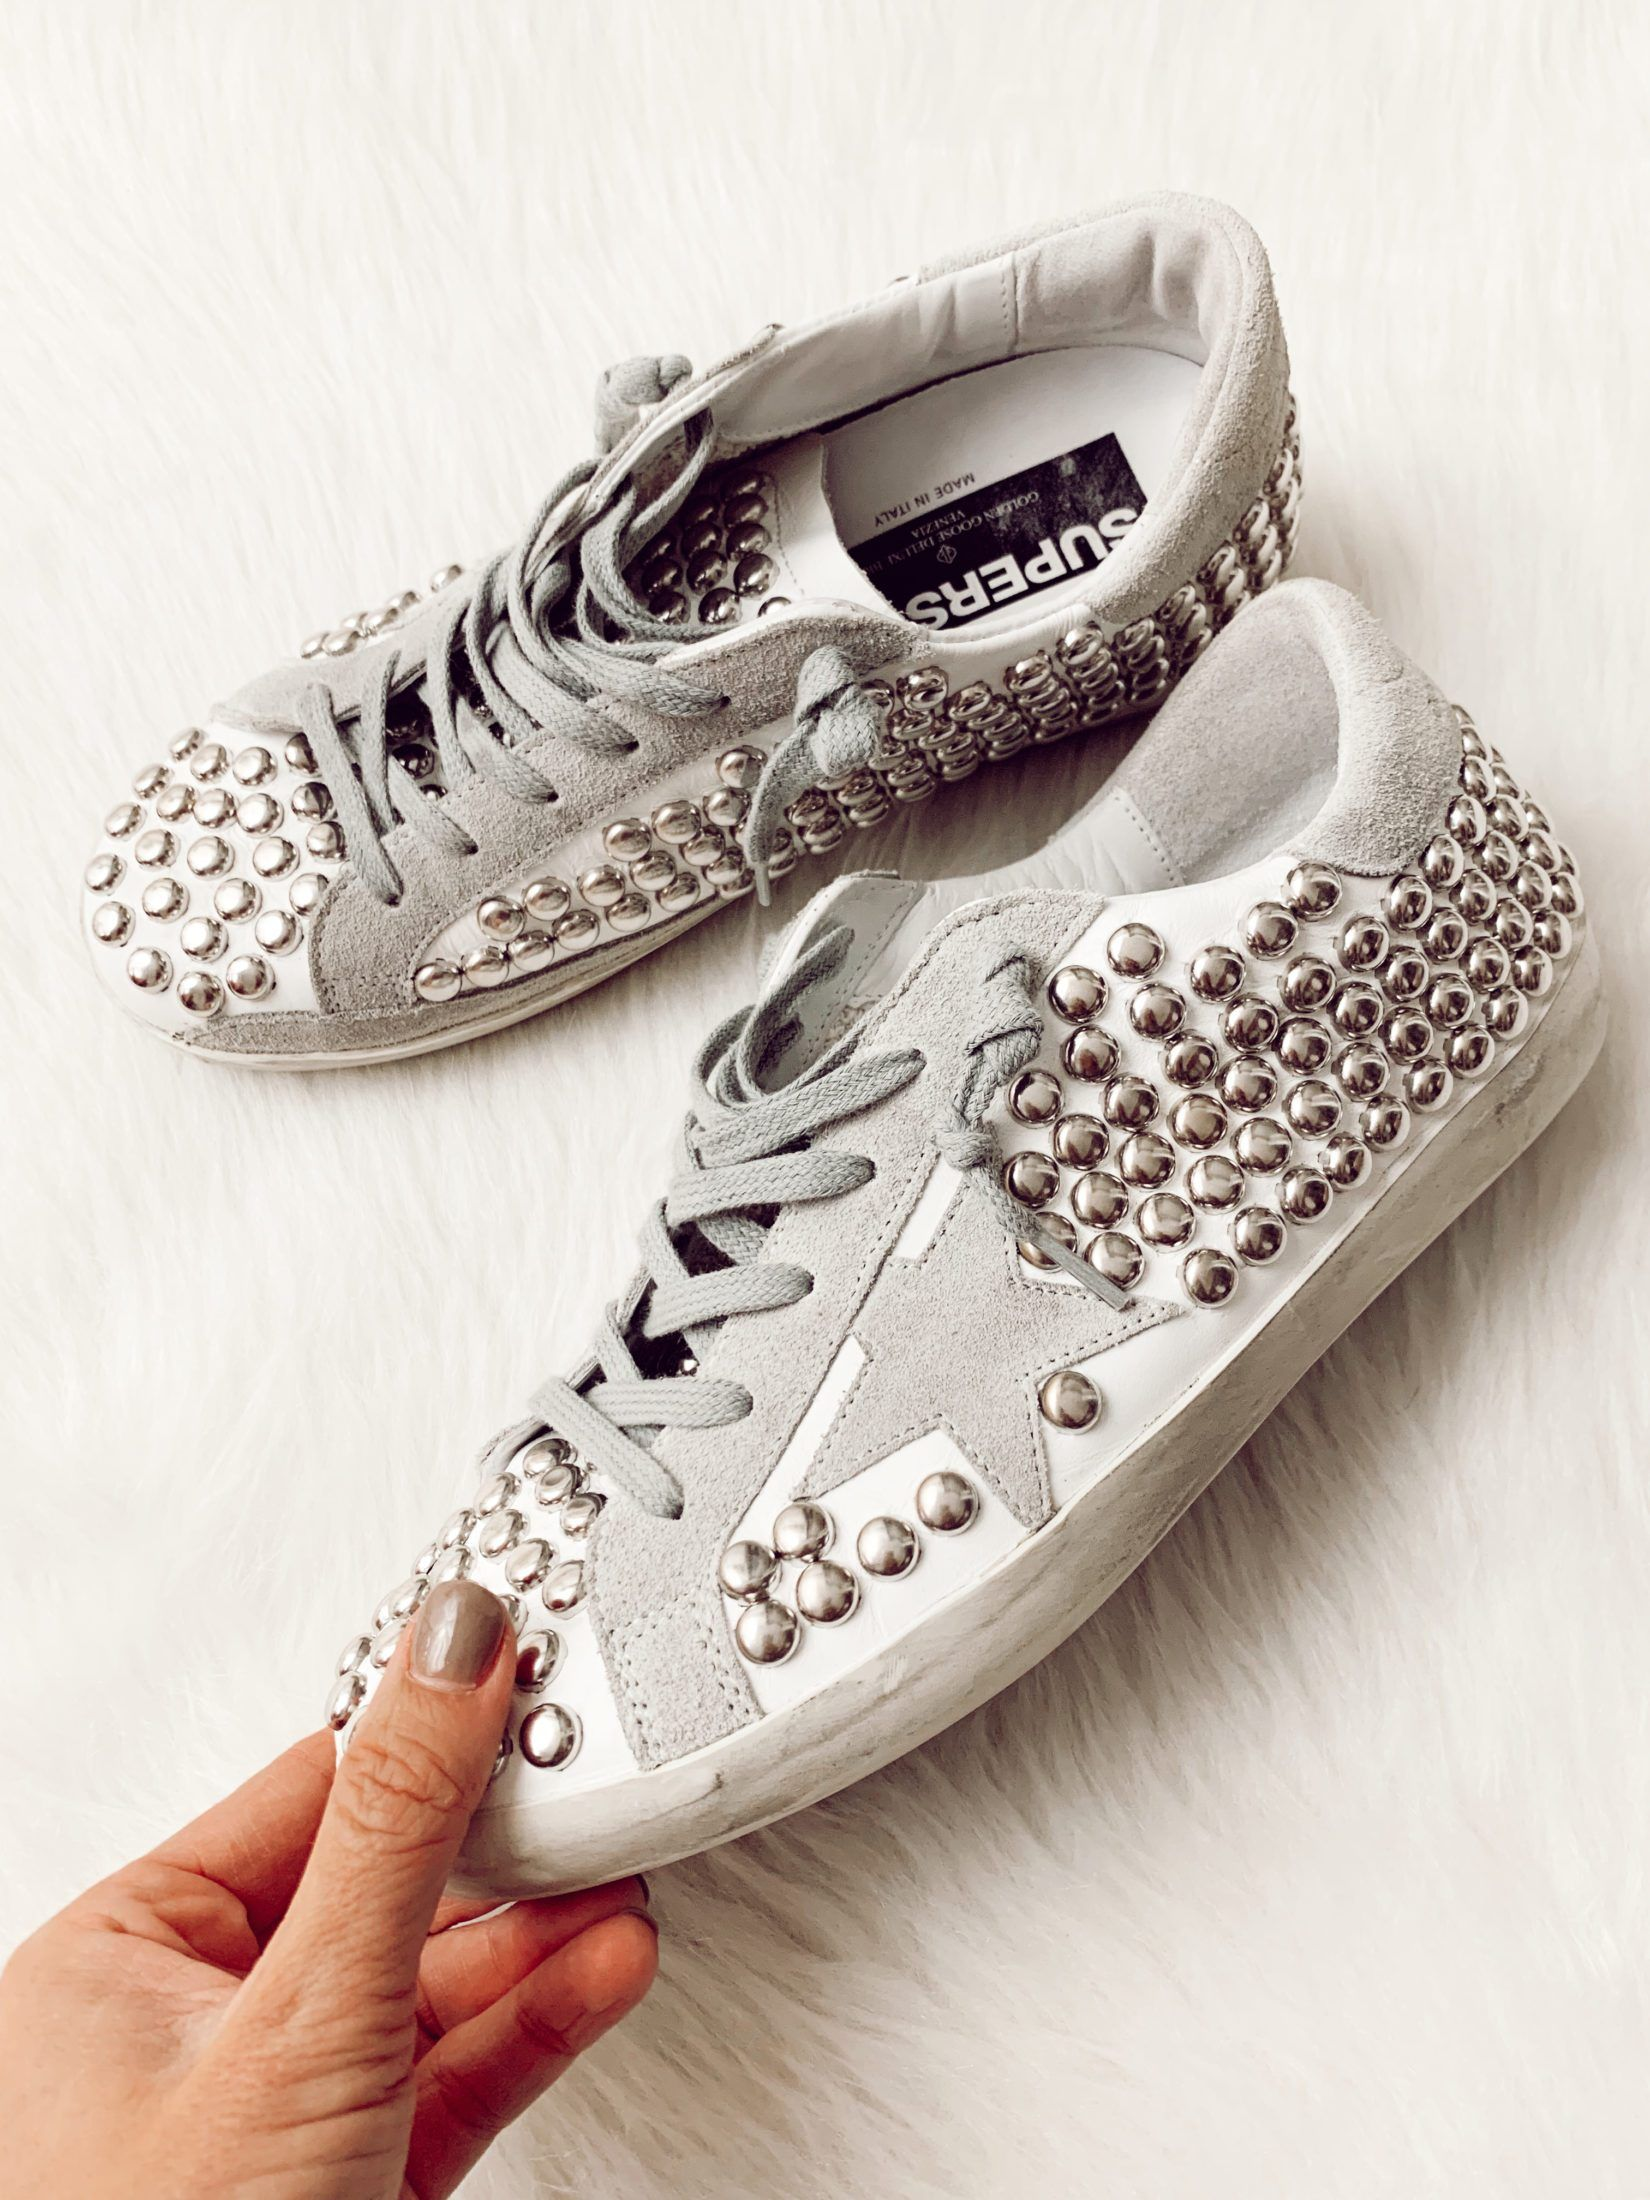 How I Use Ebay To Shop Golden Goose Sneakers The Real Fashionista Golden Goose Sneakers Outfit Golden Goose Sneakers Studded Sneakers